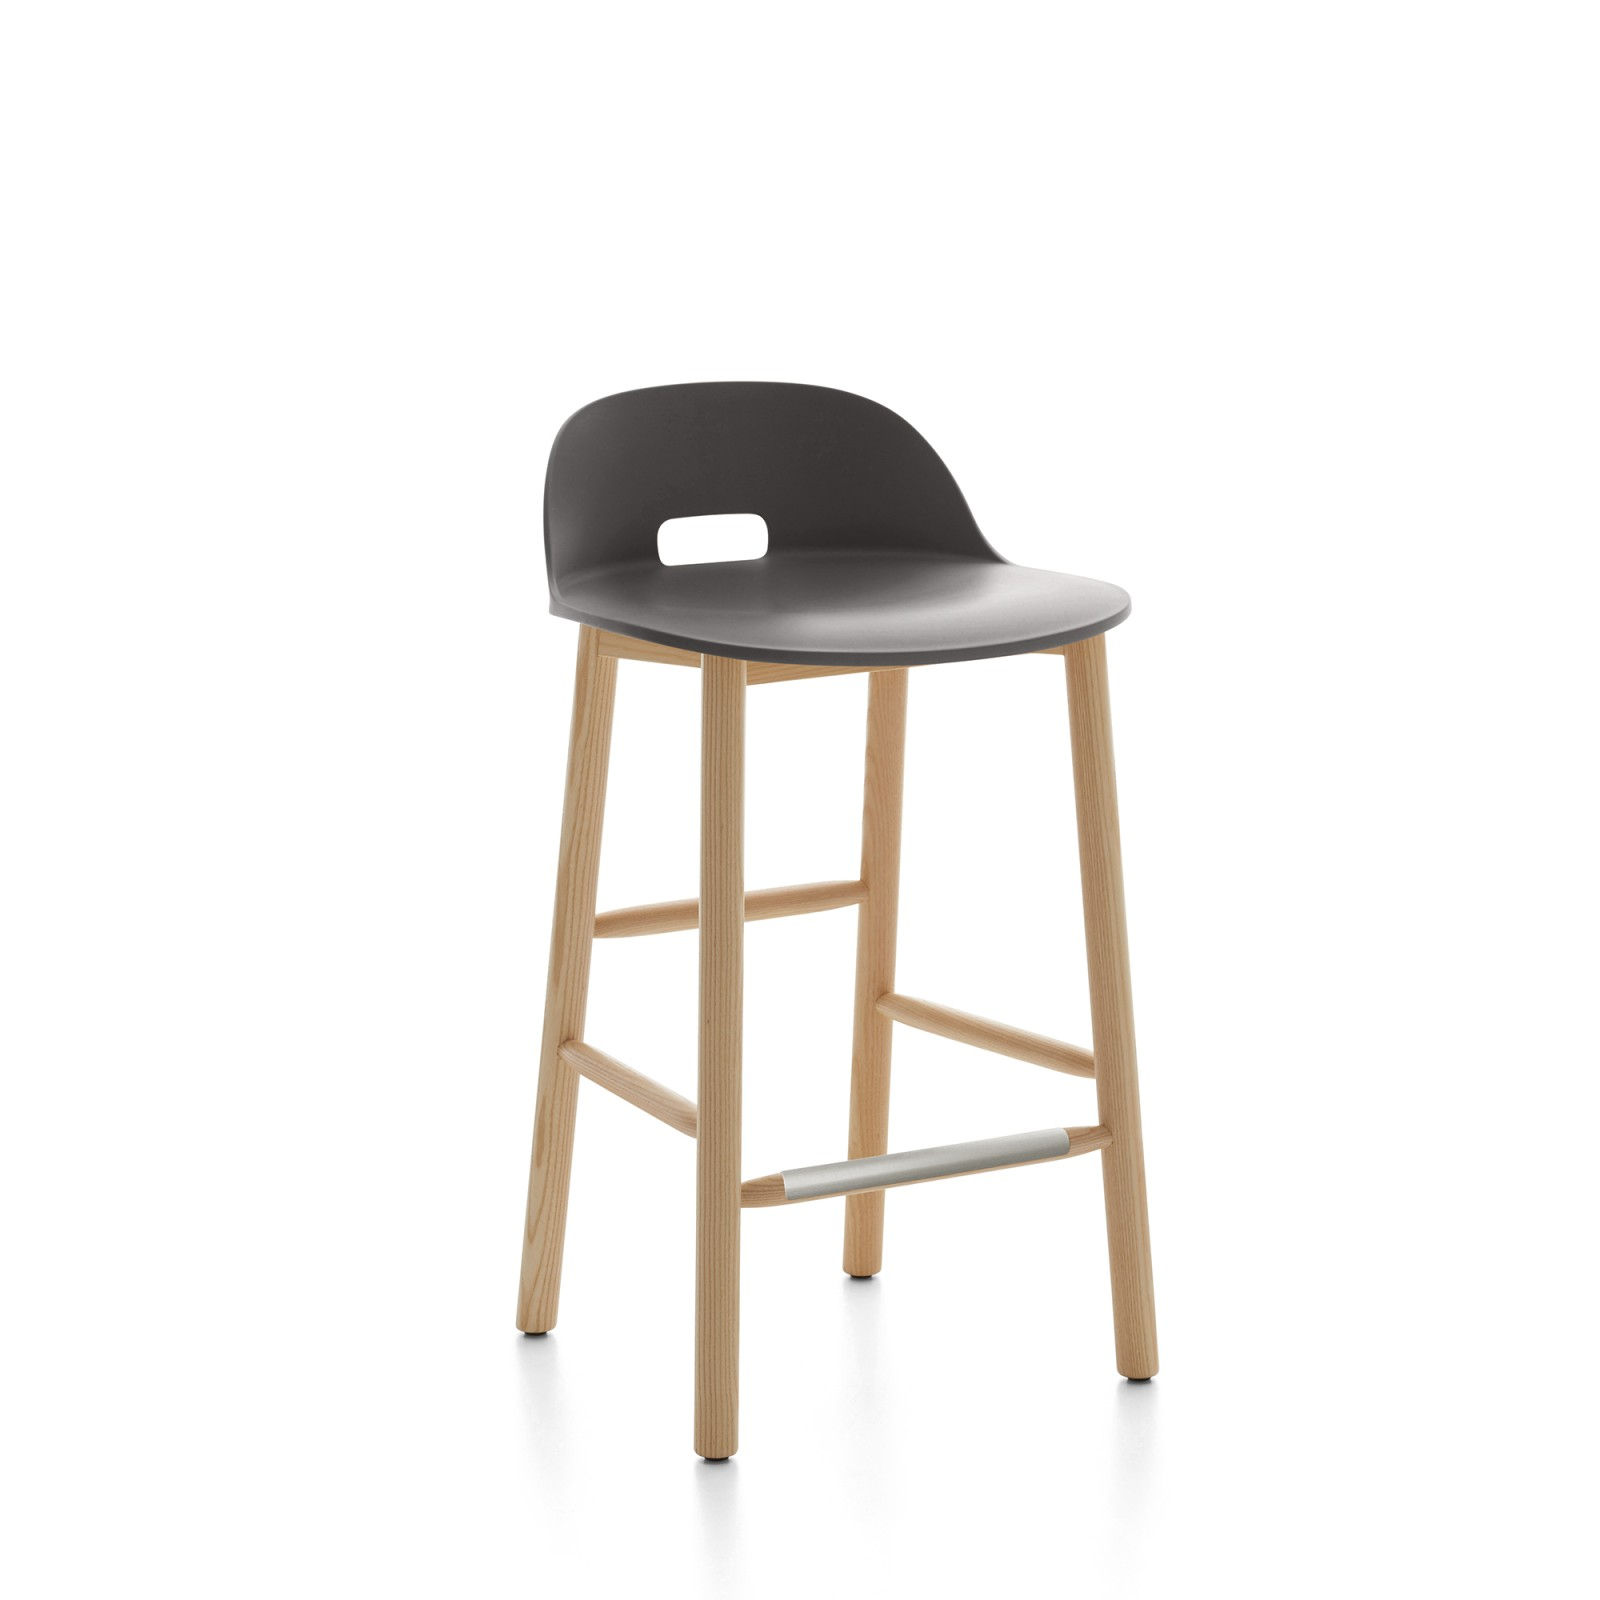 Alfi Counter Stool, Low Back Dark Grey, Natural Light Ash Frame